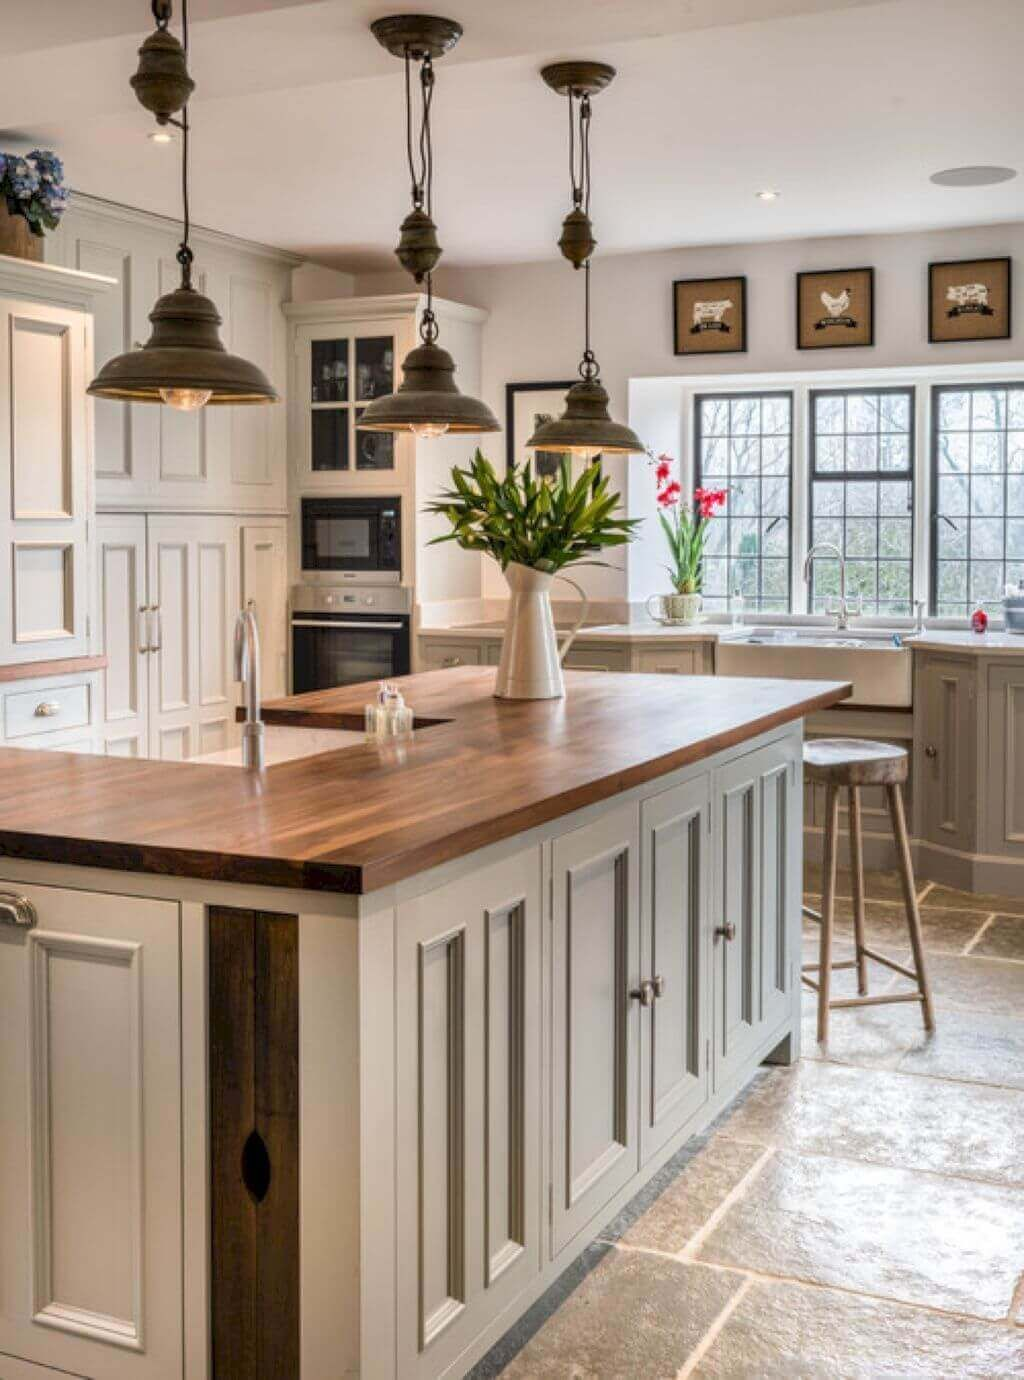 farmhouse style kitchen gorgeous modern farmhouse kitchen cabinets diy for fixer upper style industrial flare to get inspired now